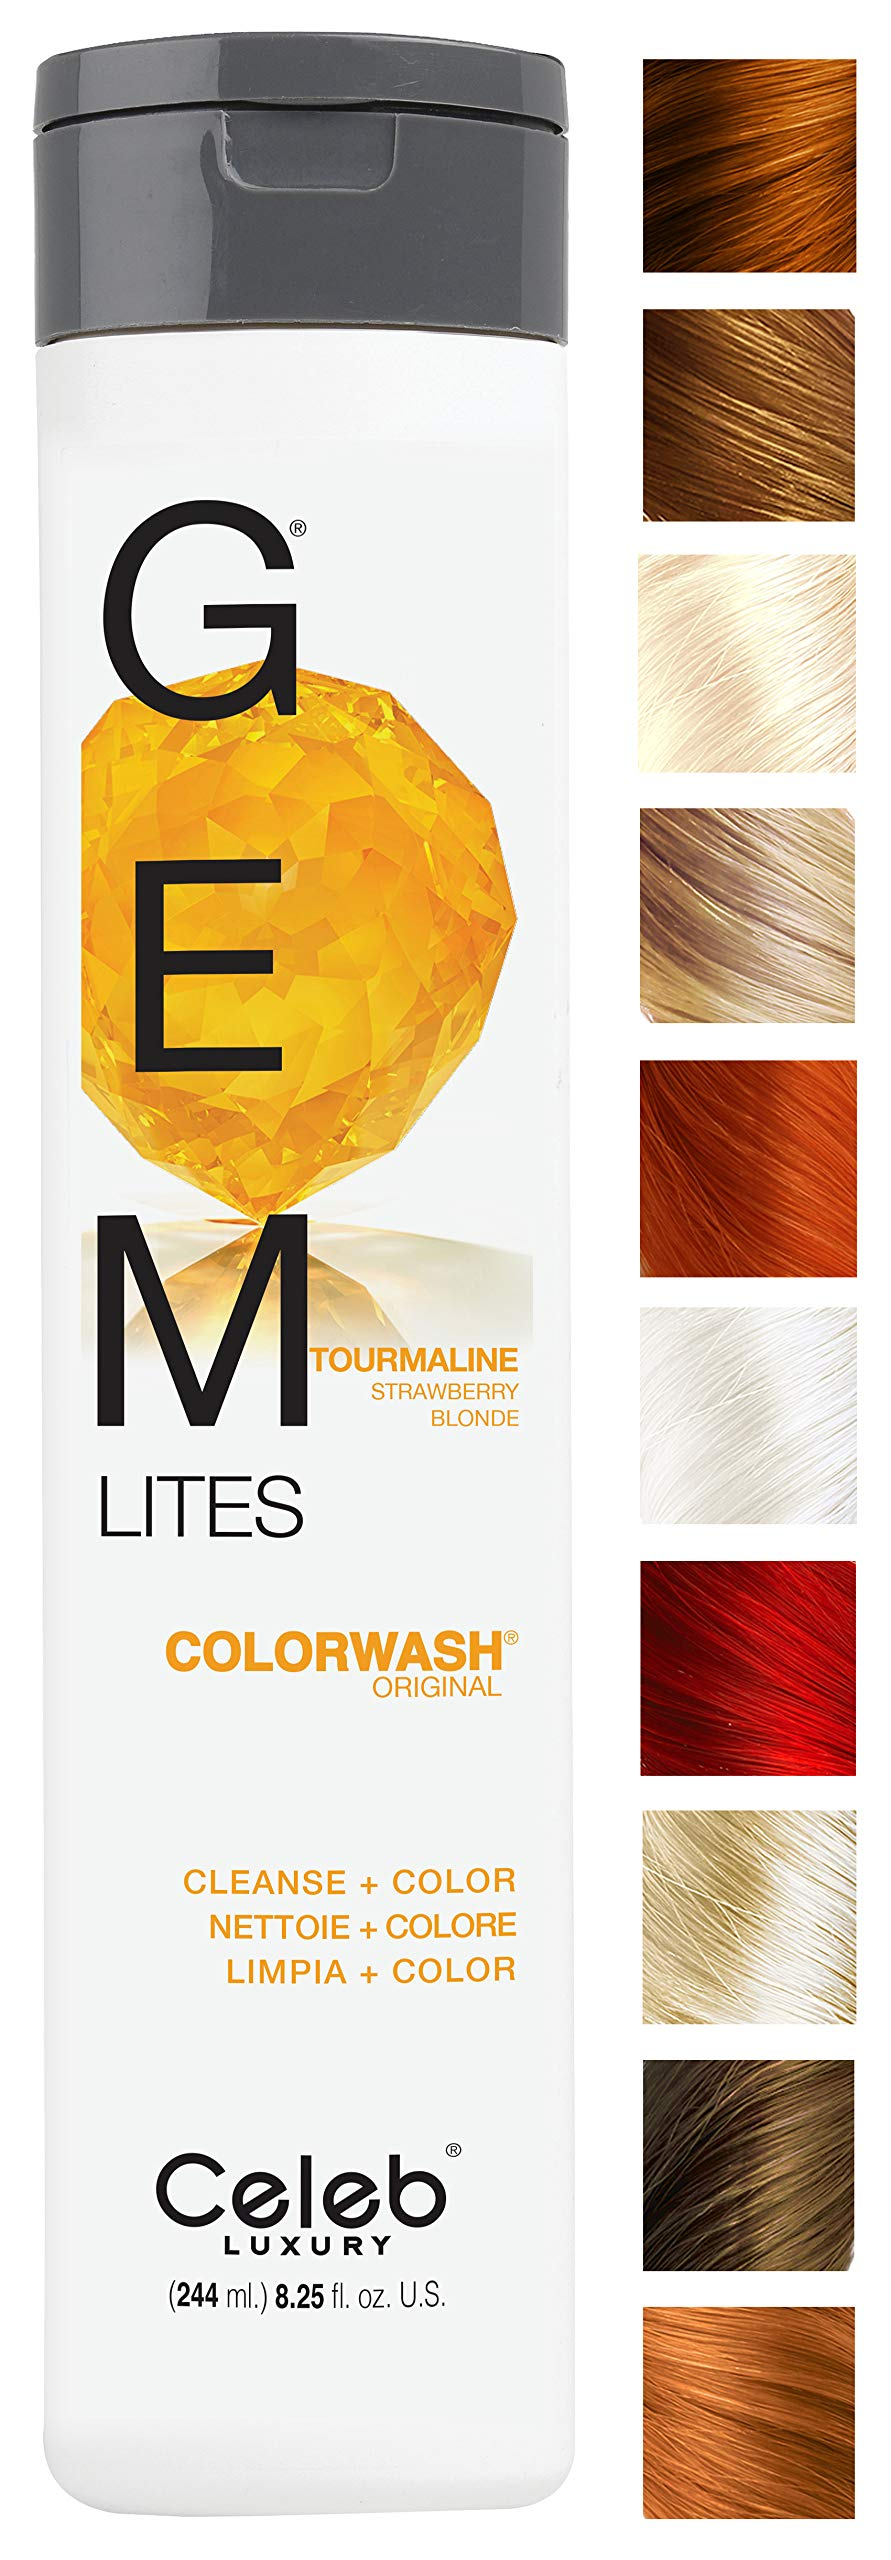 Celeb Luxury Gem Lites Colorwash: Tourmaline Strawberry Blonde, Color Depositing Shampoo, 10 Traditional Colors, Stops Fade in 1 Quick Wash, Cleanse + Color, Sulfate-Free, Cruelty-Free, 100% Vegan by CELEB LUXURY